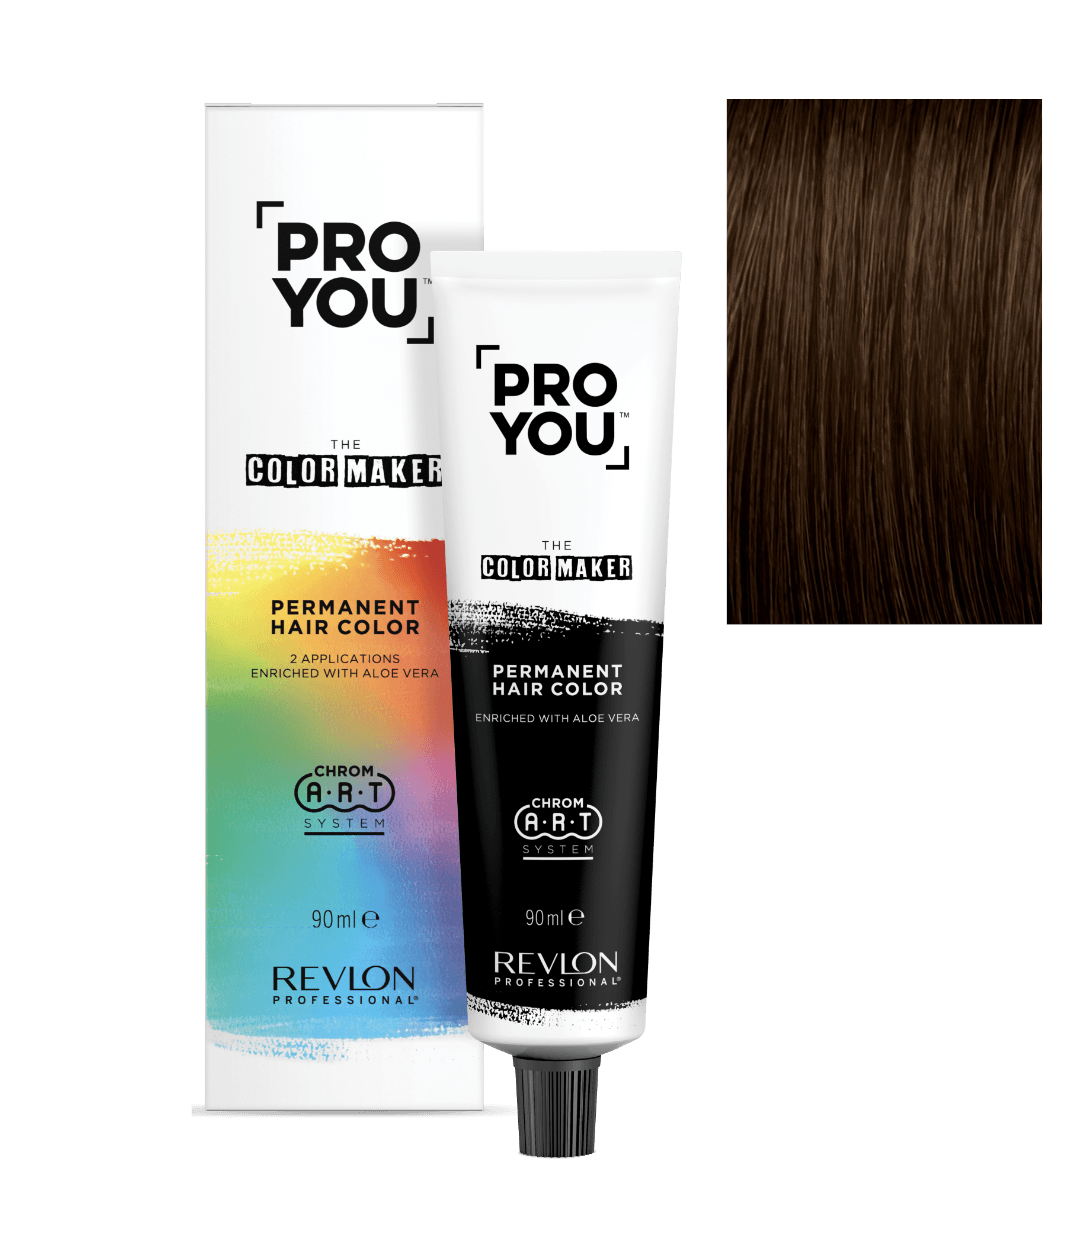 revlon professional ProYou Color Maker 5.8 | Duo Cosmetics